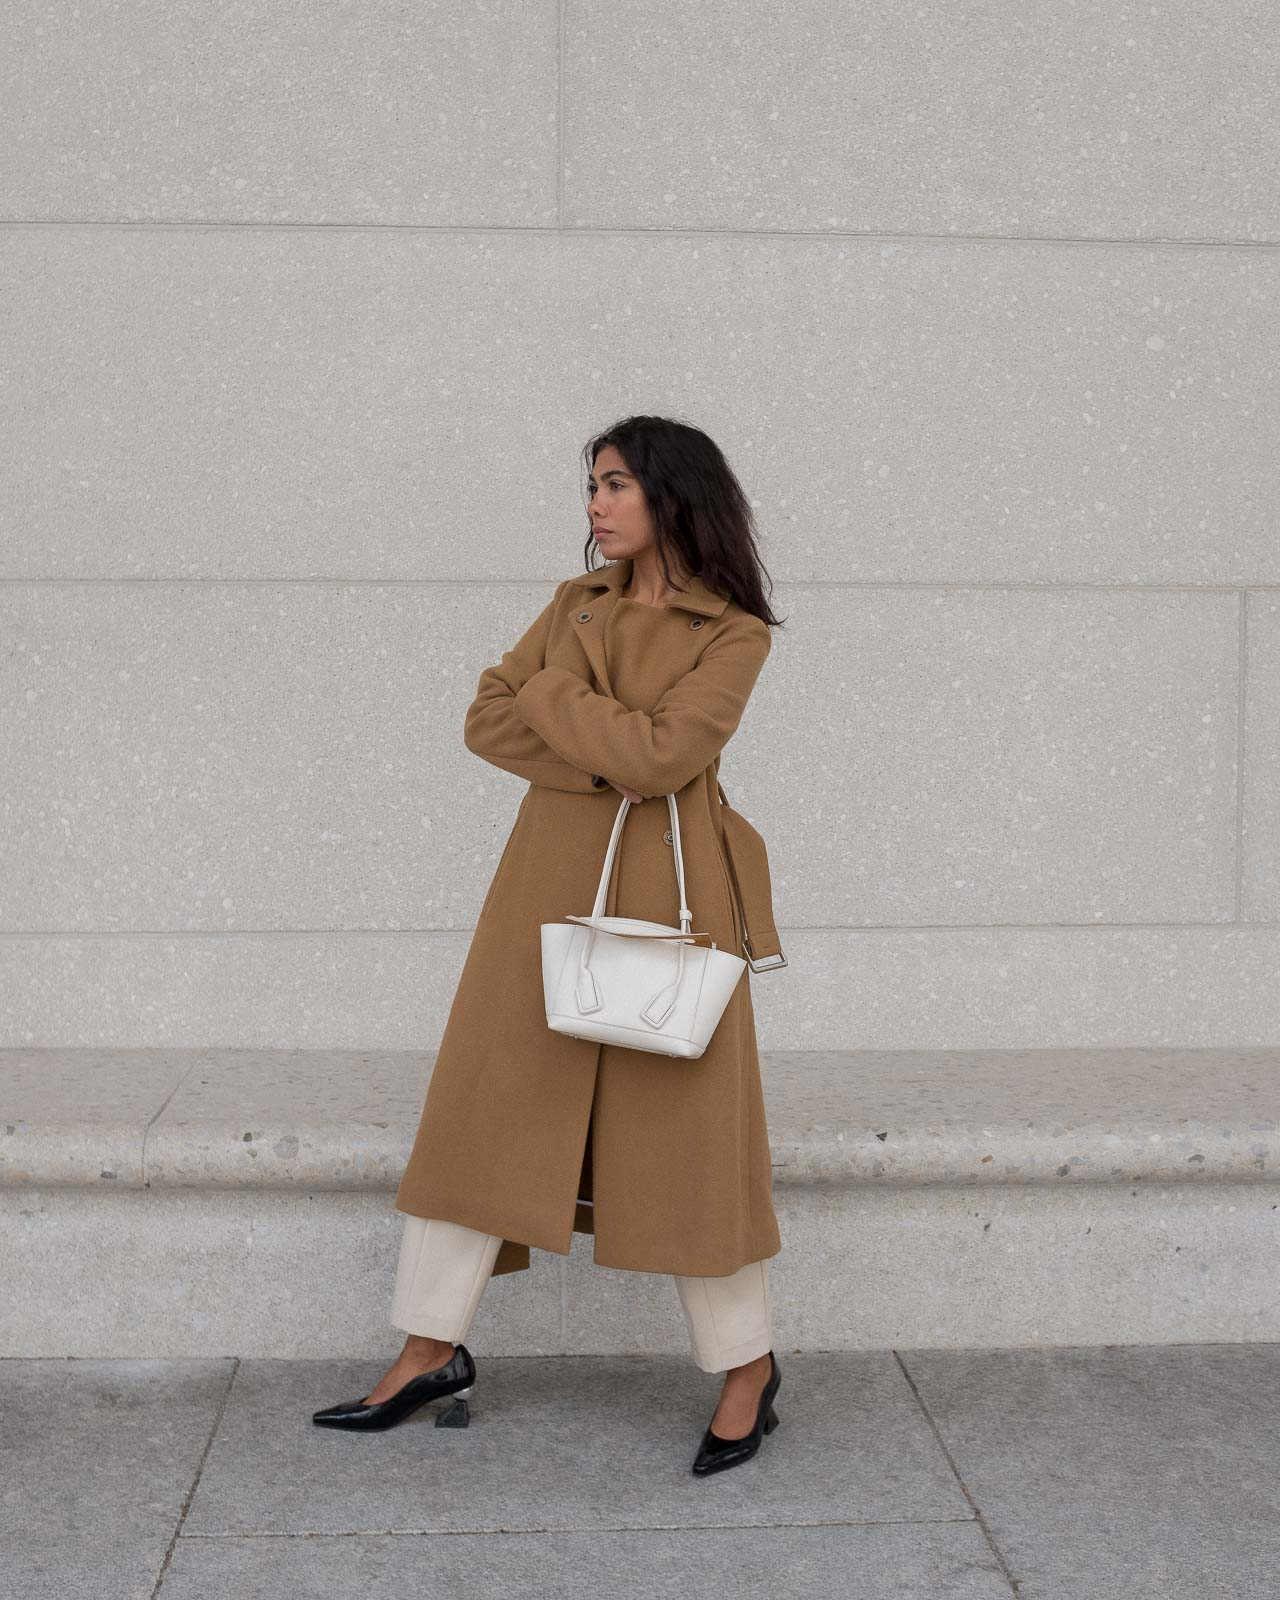 storm wears white bottega veneta arco bag with yuul yie black mules combined with by malene birger camel coat